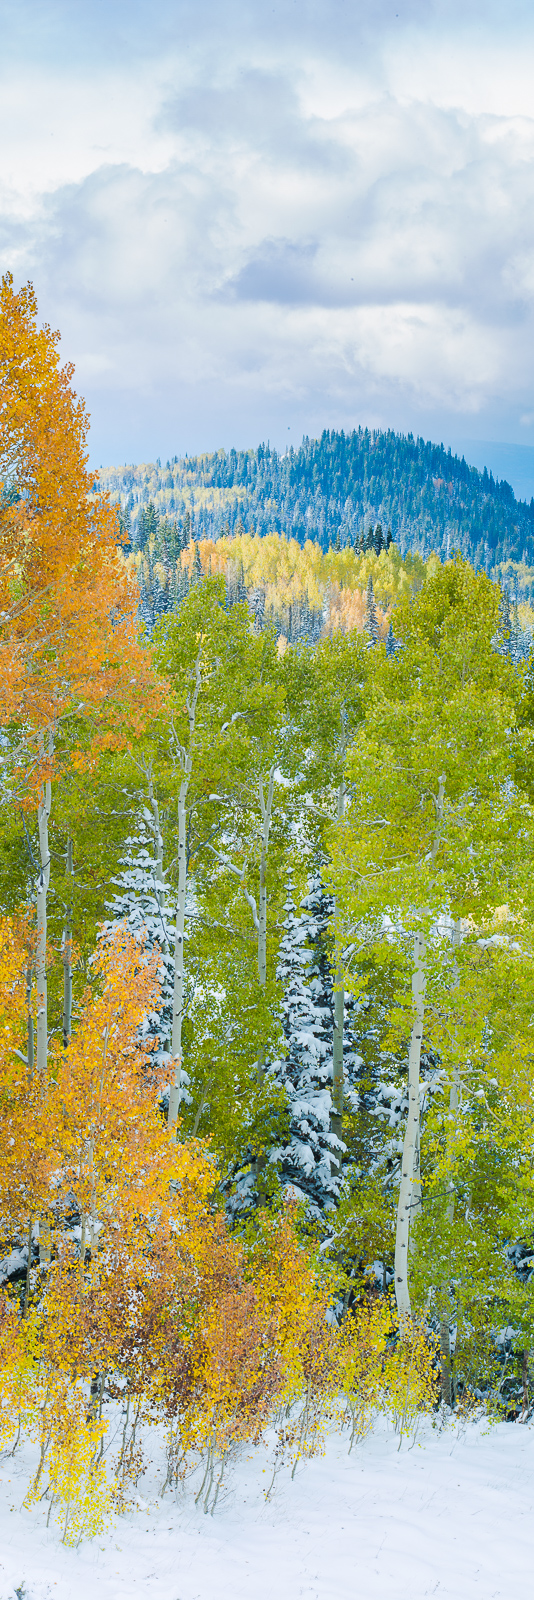 Start of Winter,Aspen,Fall,Trees,Yellow,autumn,panoramic,snow,vertical, photo